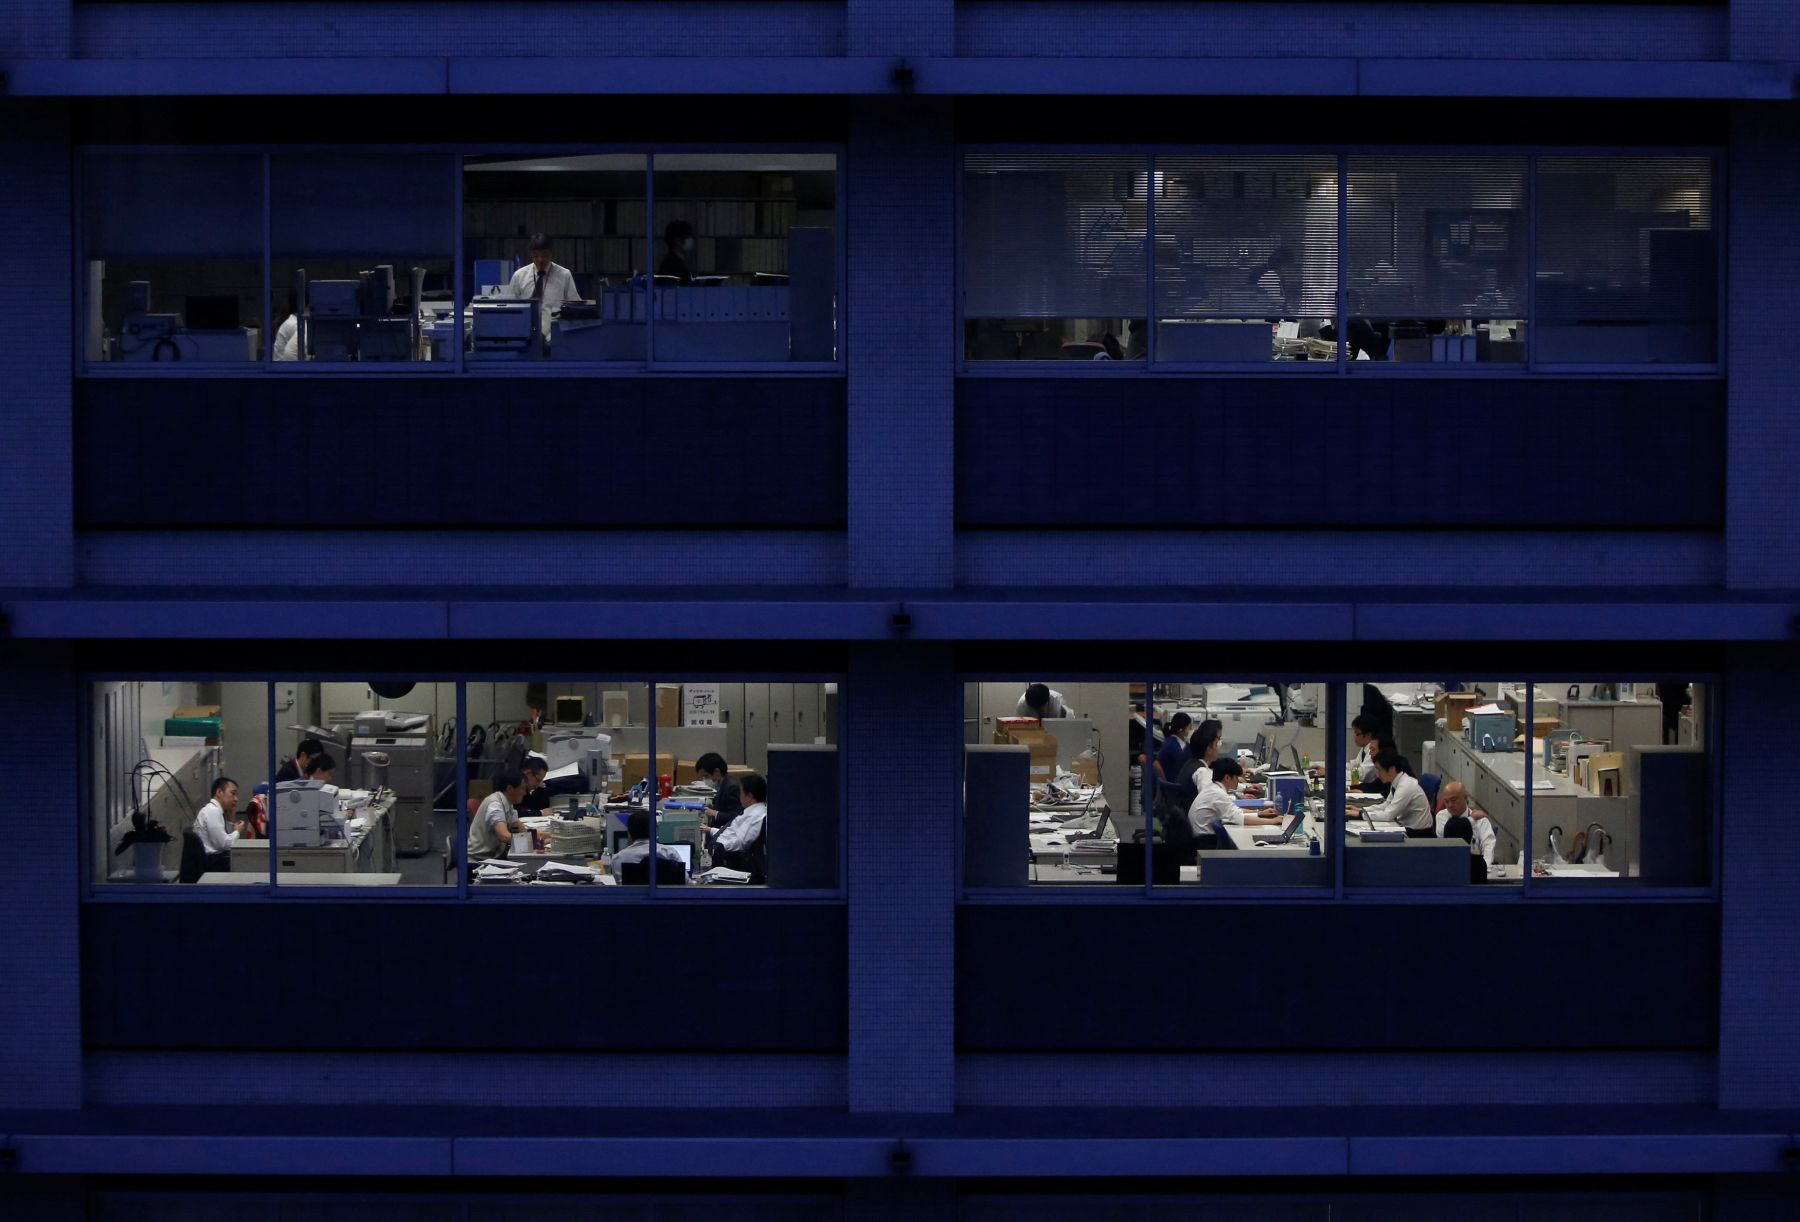 FILE PHOTO: Office workers are pictured through building windows during dusk in Tokyo